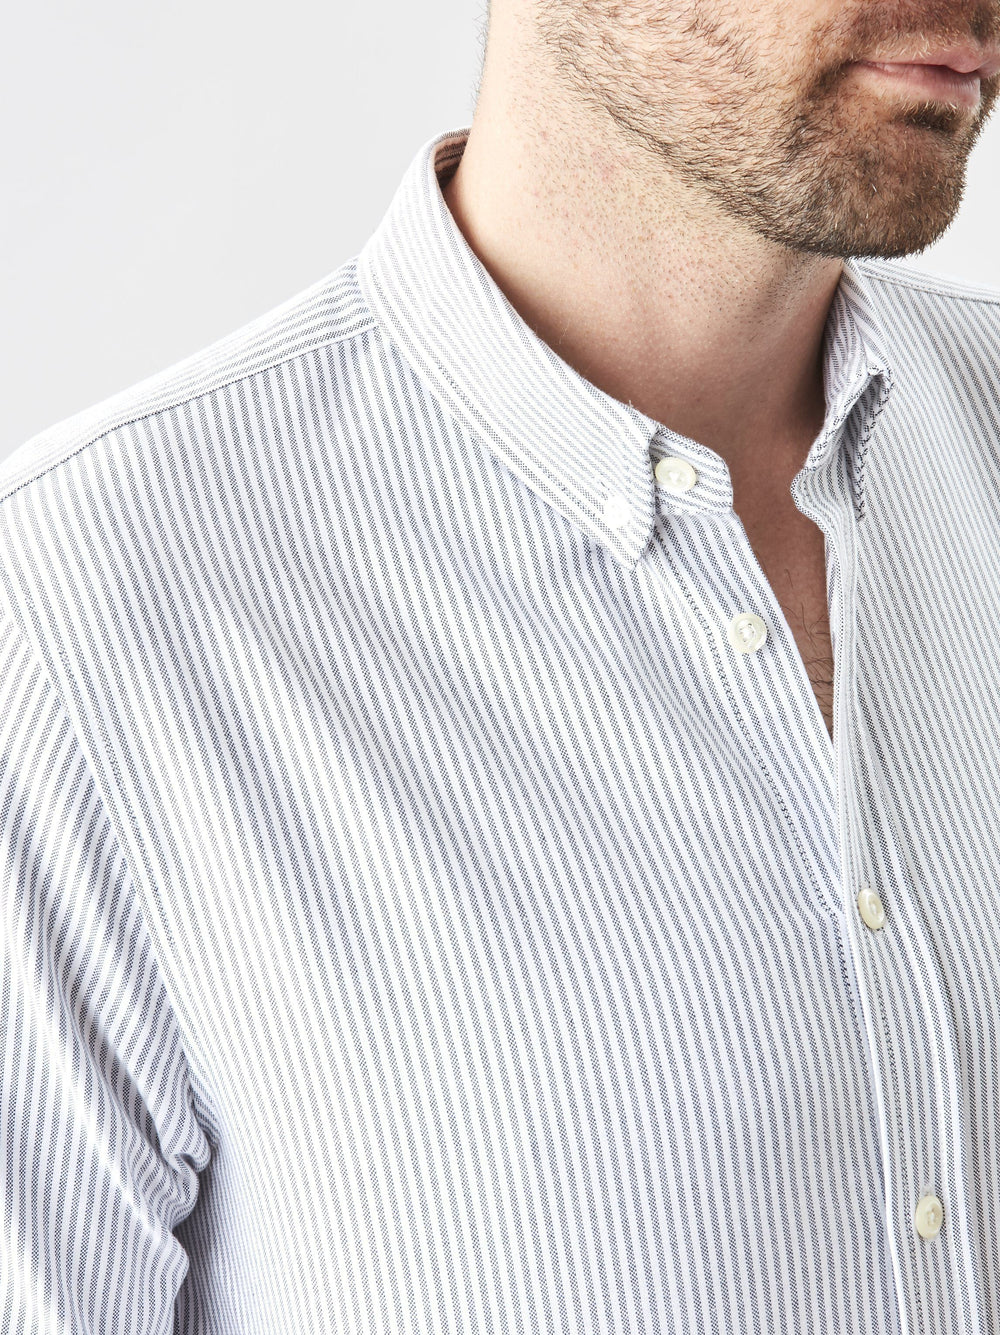 Shirt - Button Down- Oxford Charcoal Stripe